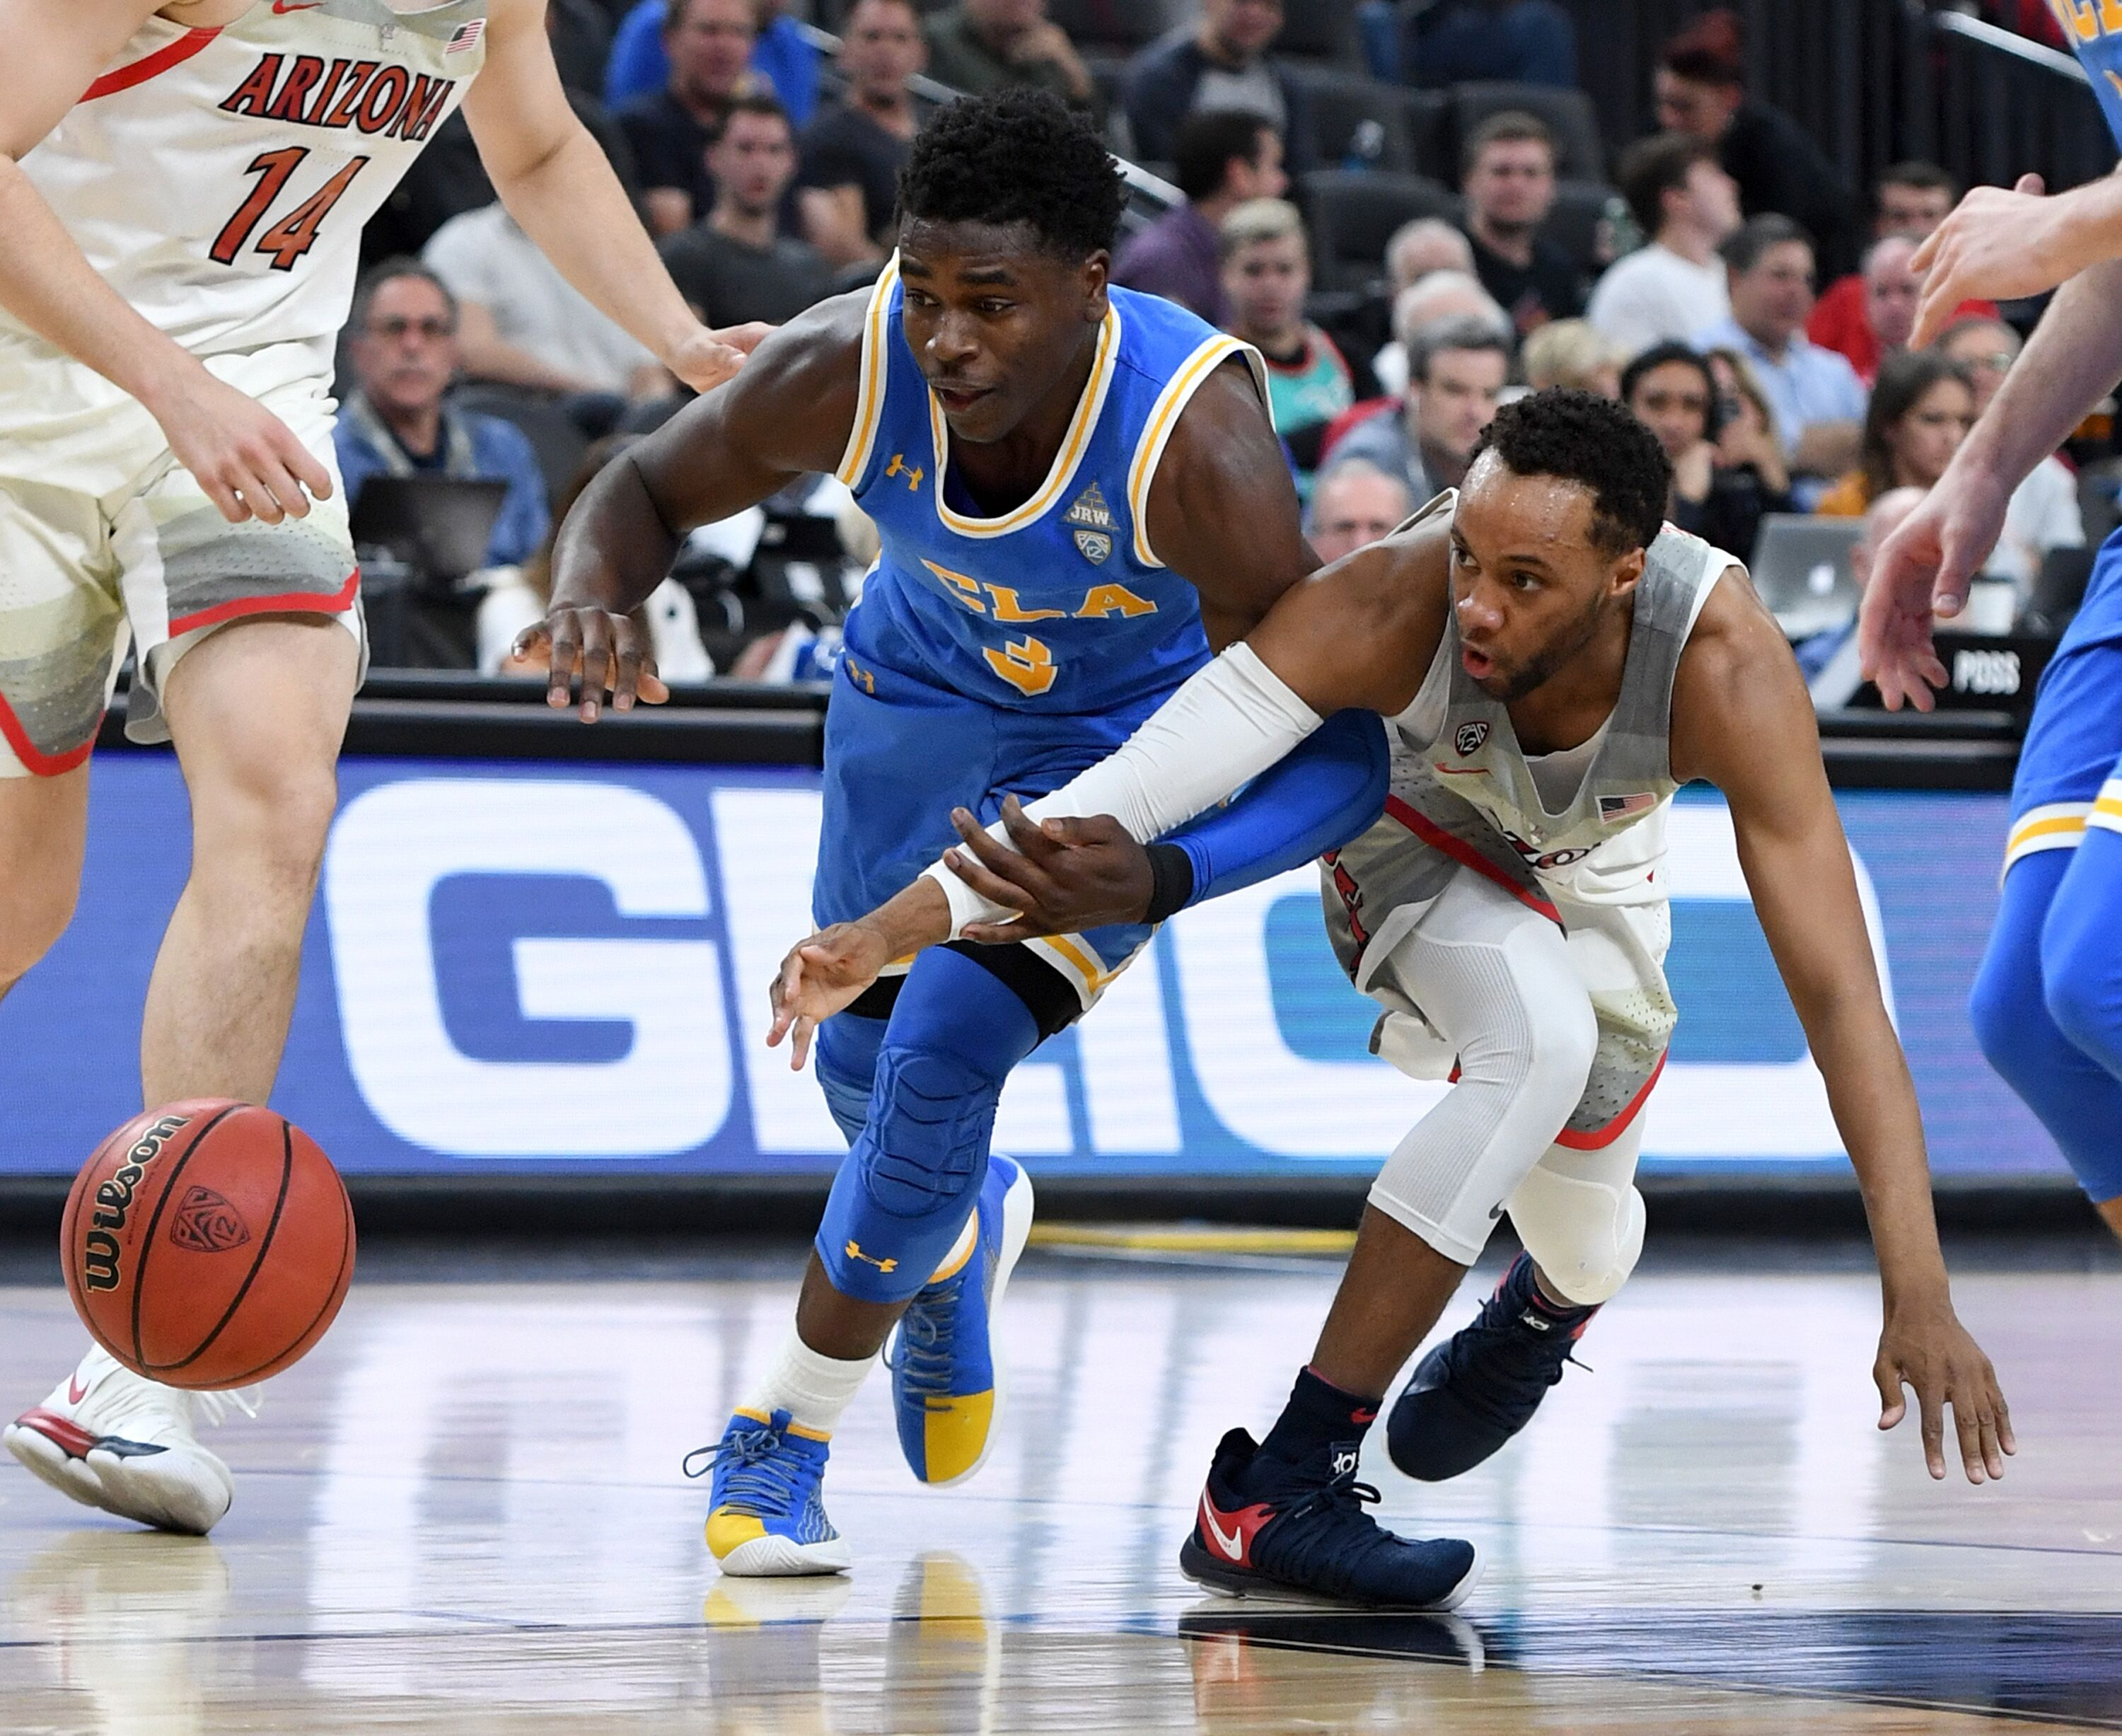 929927970-ucla-v-arizona.jpg